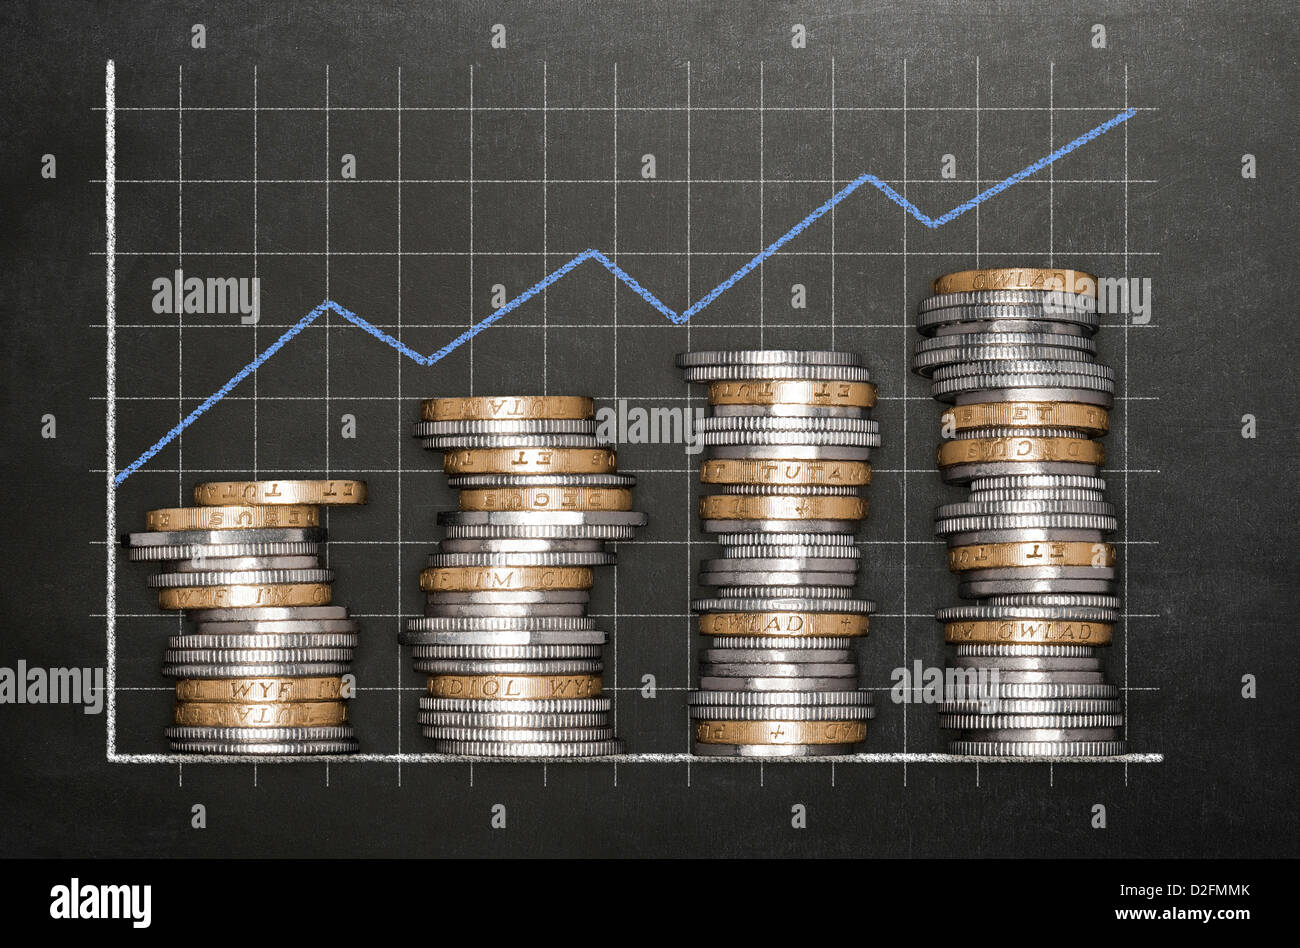 Concept finance growth - Stacks of sterling coins on a blackboard background forming an ascending bar graph - Stock Image